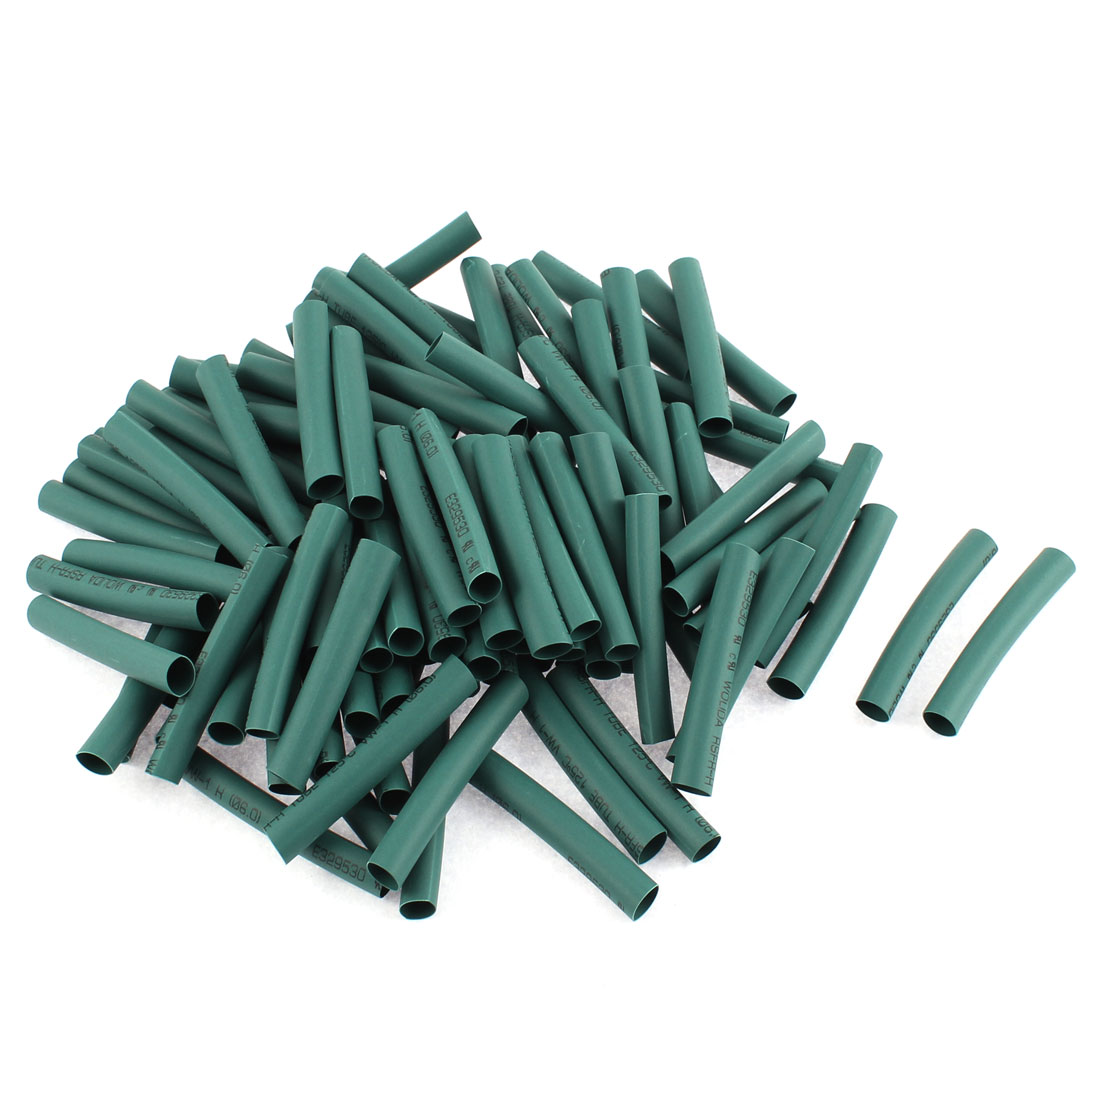 Electrical Connection Cable Sleeve 50mm Length Heat Shrink Tubing Green 100Pcs